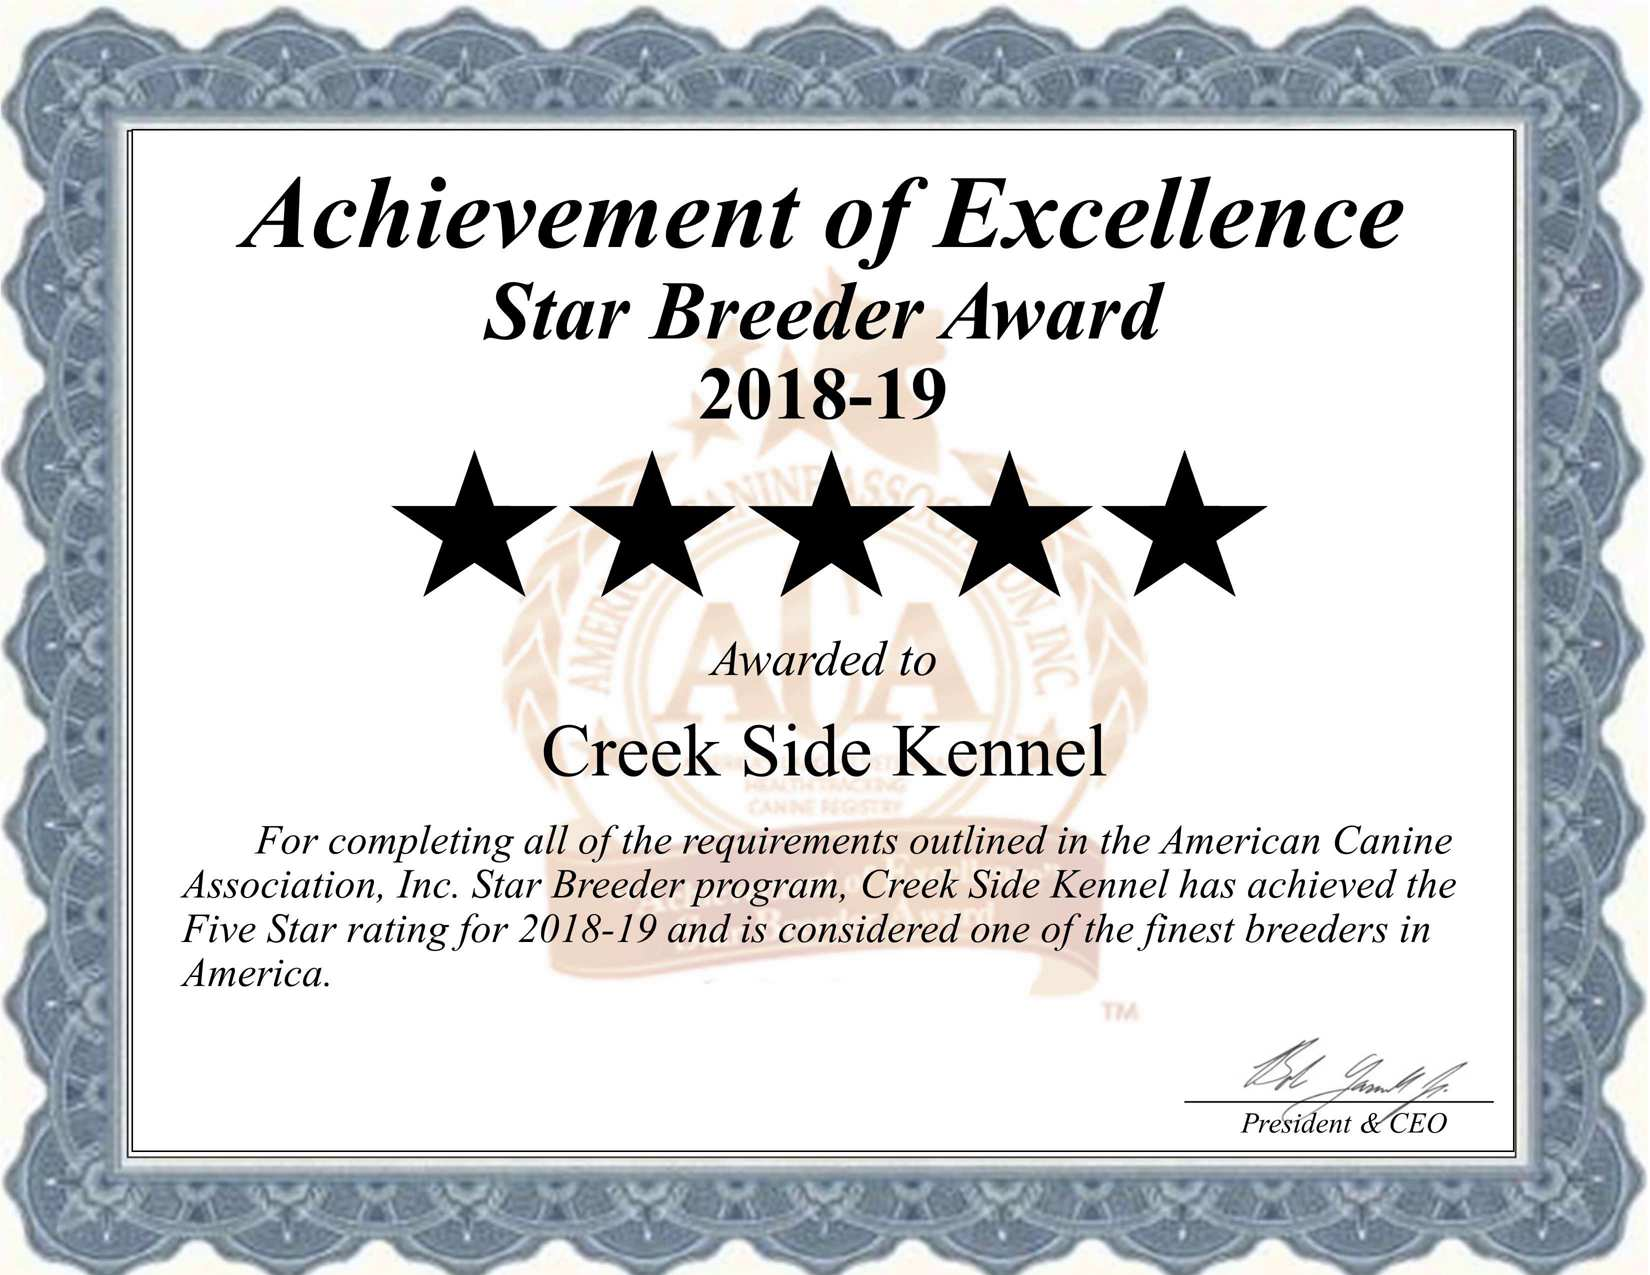 creek, side, kennel, certificate, creek-sidenel, creekside, dog, breeder, oberlin, kanas, ks, pup, pups, puppies, USDA, Licensed, Inspected, license, number, kennel, puppies, litter, agriculture, department, dept, dogs, star, breeders, USA, loving, American, Canine, Association, Program, Dog, ACA, breeding, litter, application, registration, requirements, records, shows, education, puppymill, breeder, mill